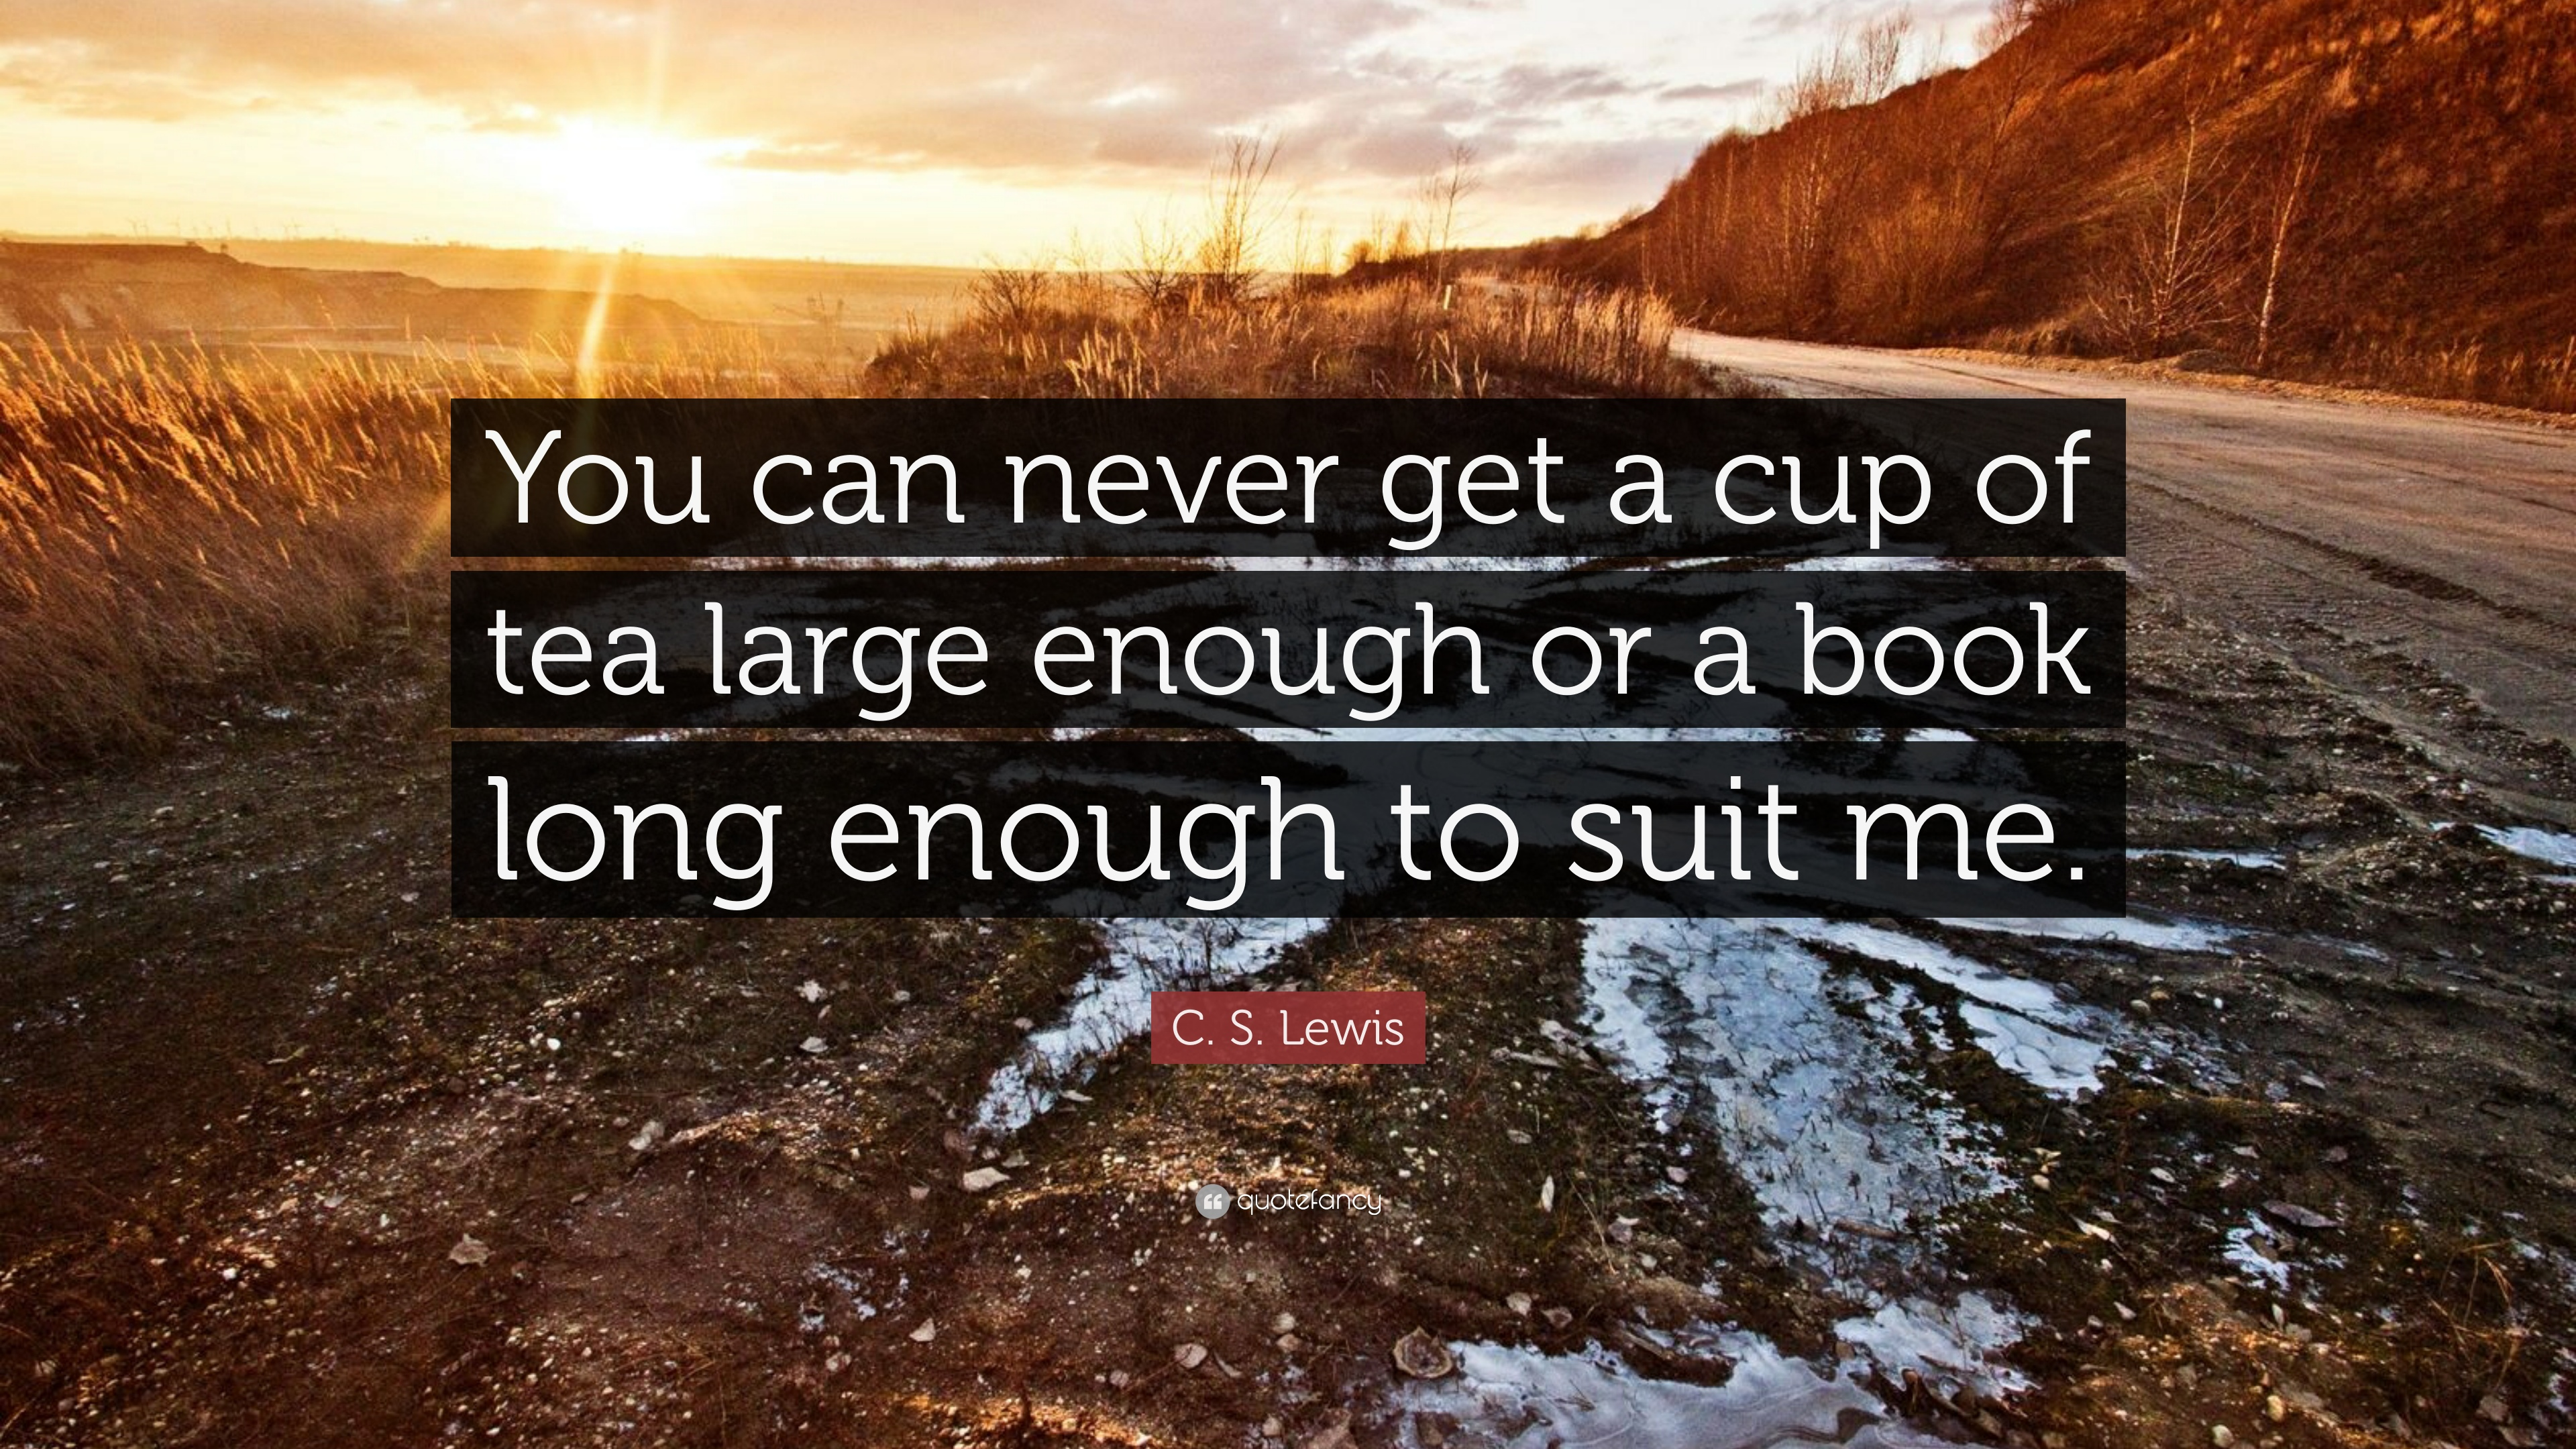 C. S. Lewis Quote: U201cYou Can Never Get A Cup Of Tea Large Enough Or